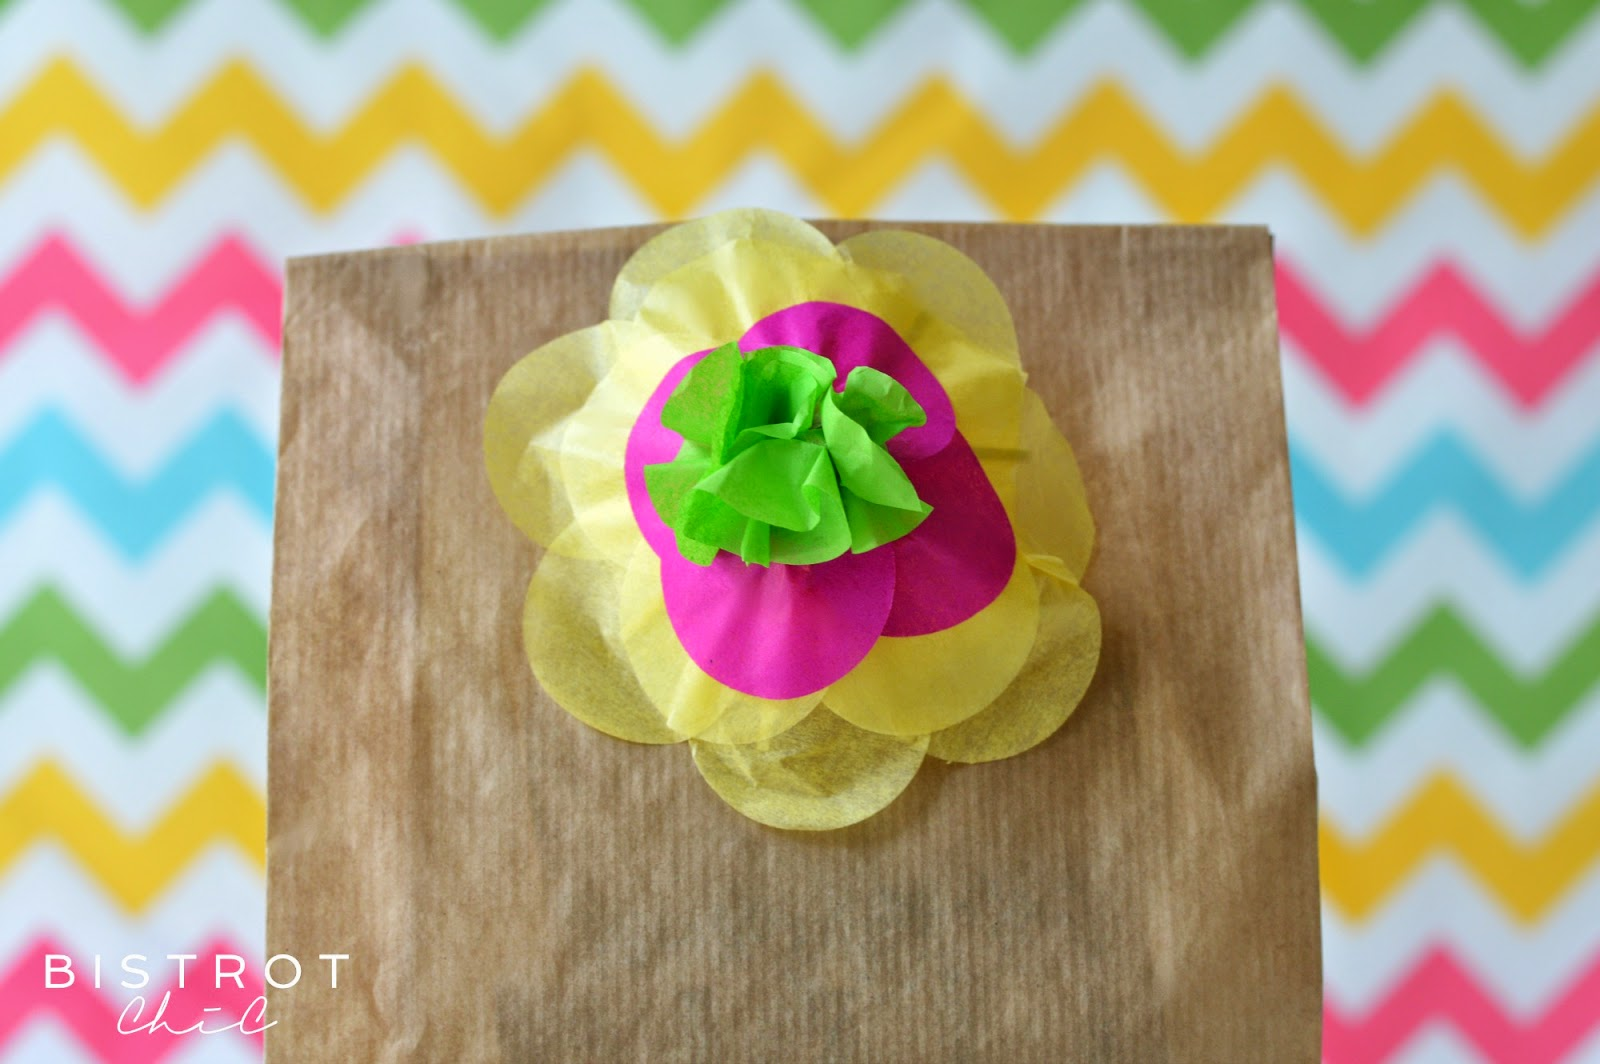 Drink Party Umbrellas used as gift embelishment by BistrotChic